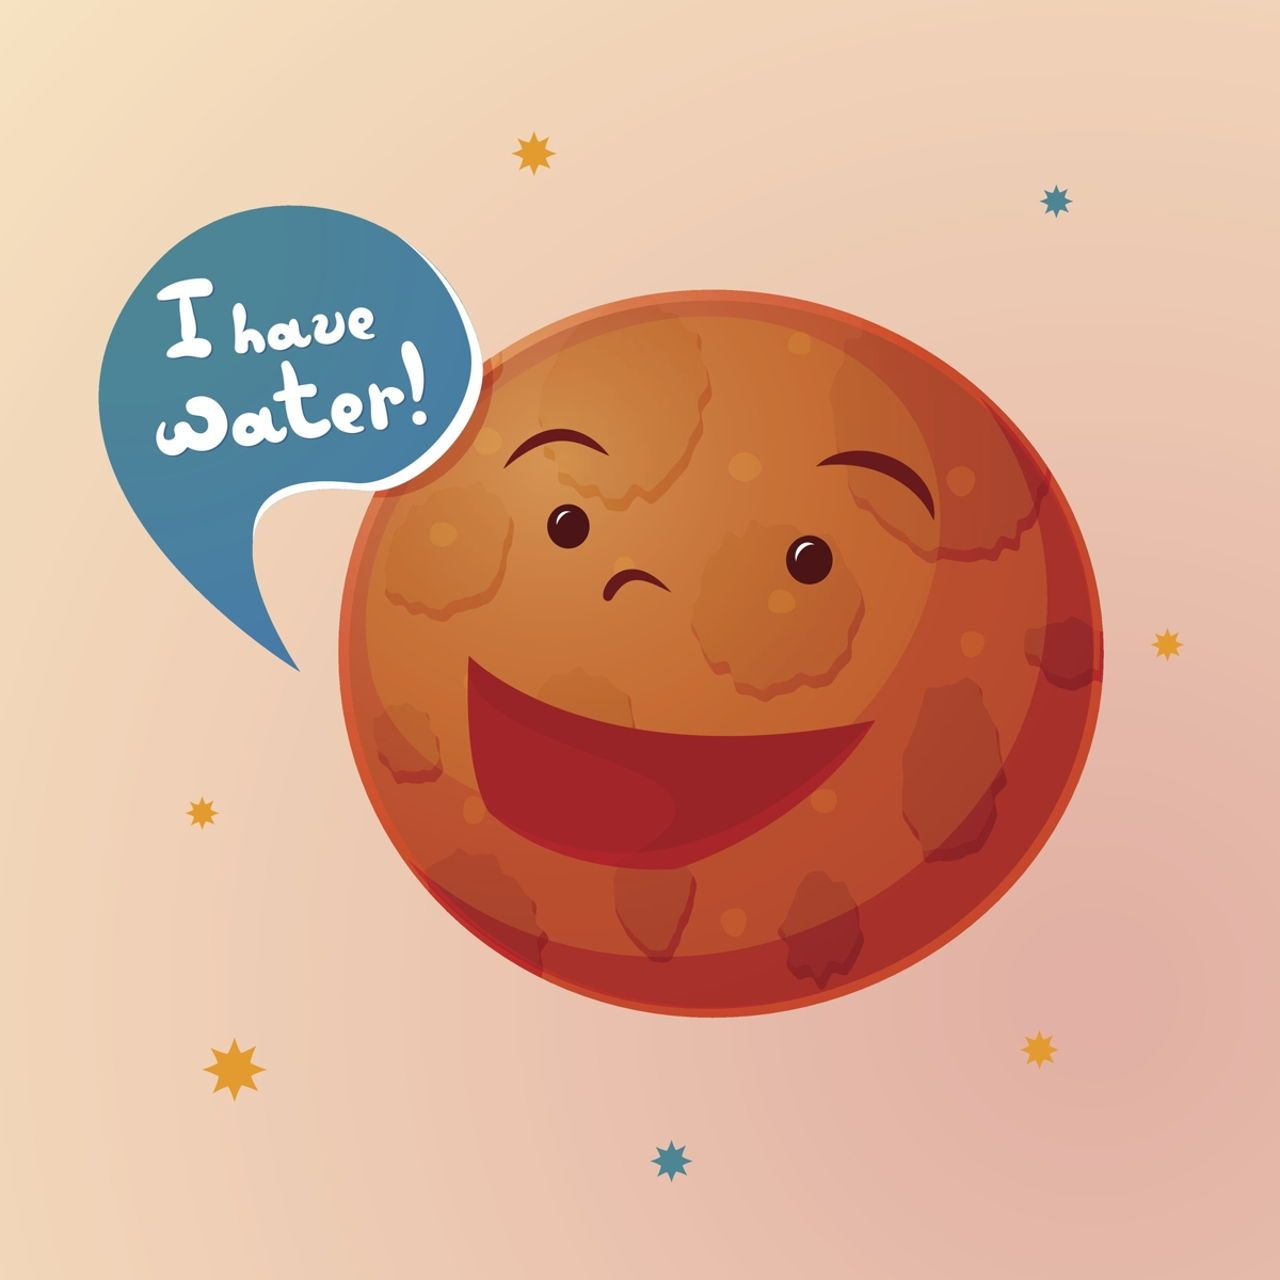 Planet Mars With Cartoon Face Vector Illustration Planets Cartoon Faces Terrestrial